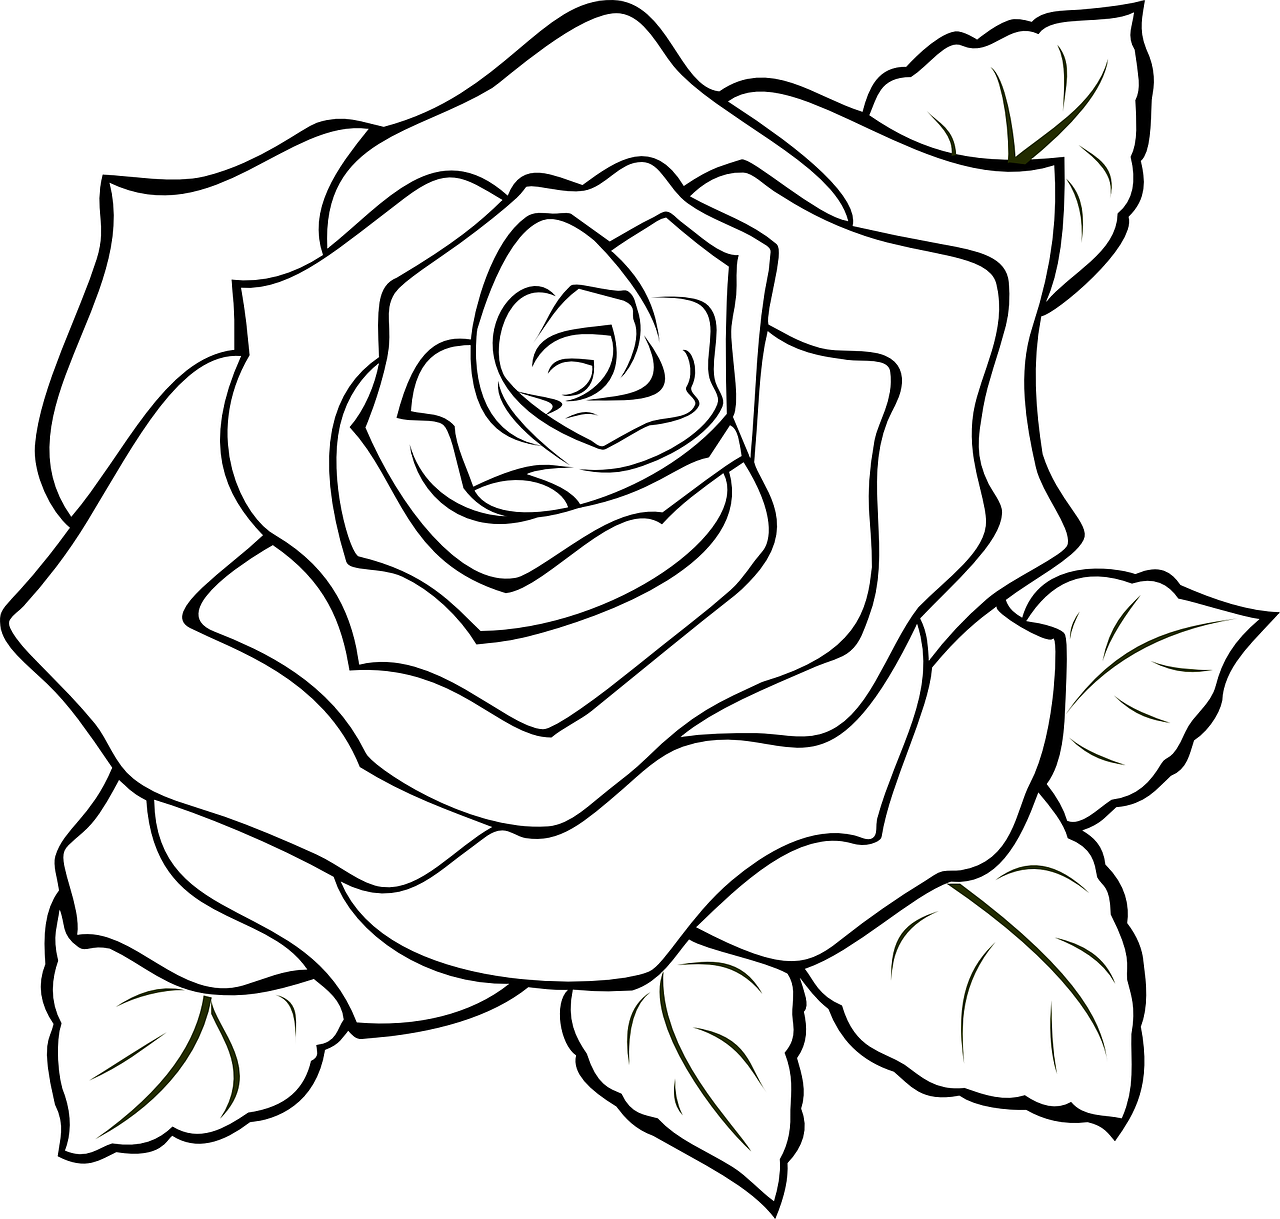 How to make drawing of rose: 14 free printable rose stencils